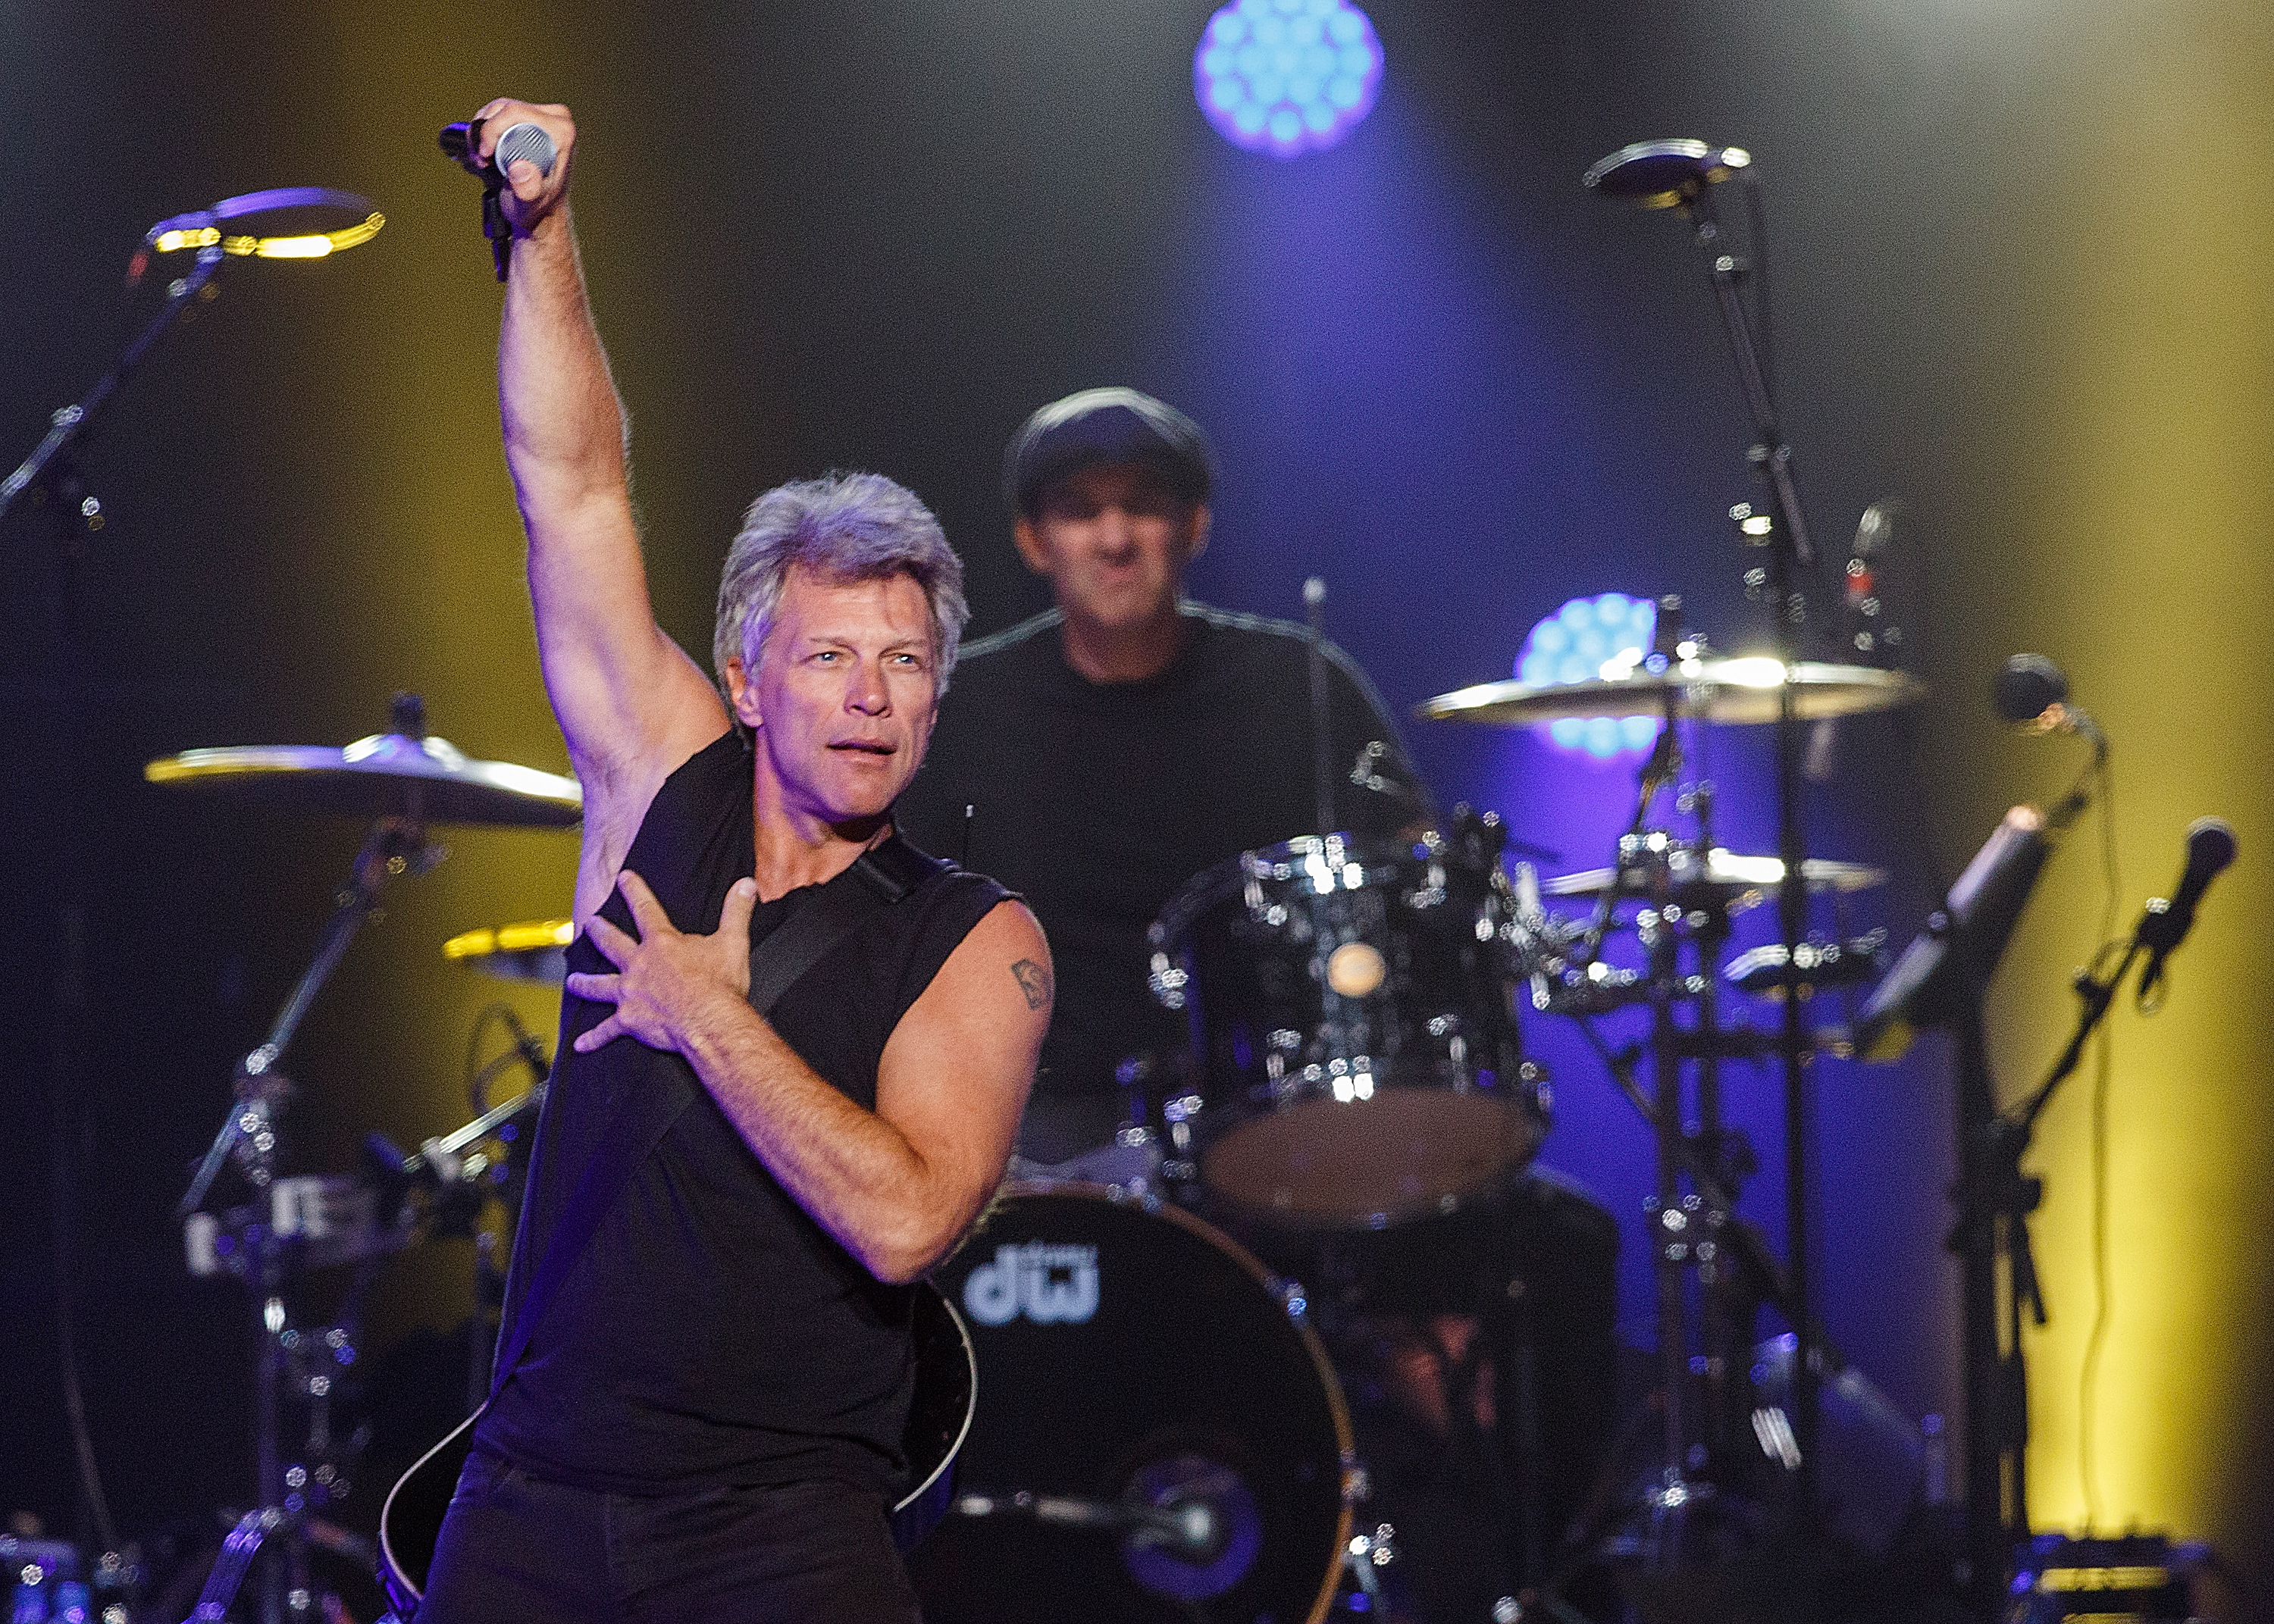 Musician Jon Bon Jovi of Bon Jovi performs onstage at Rogers Arena in Vancouver on Aug. 22, 2015